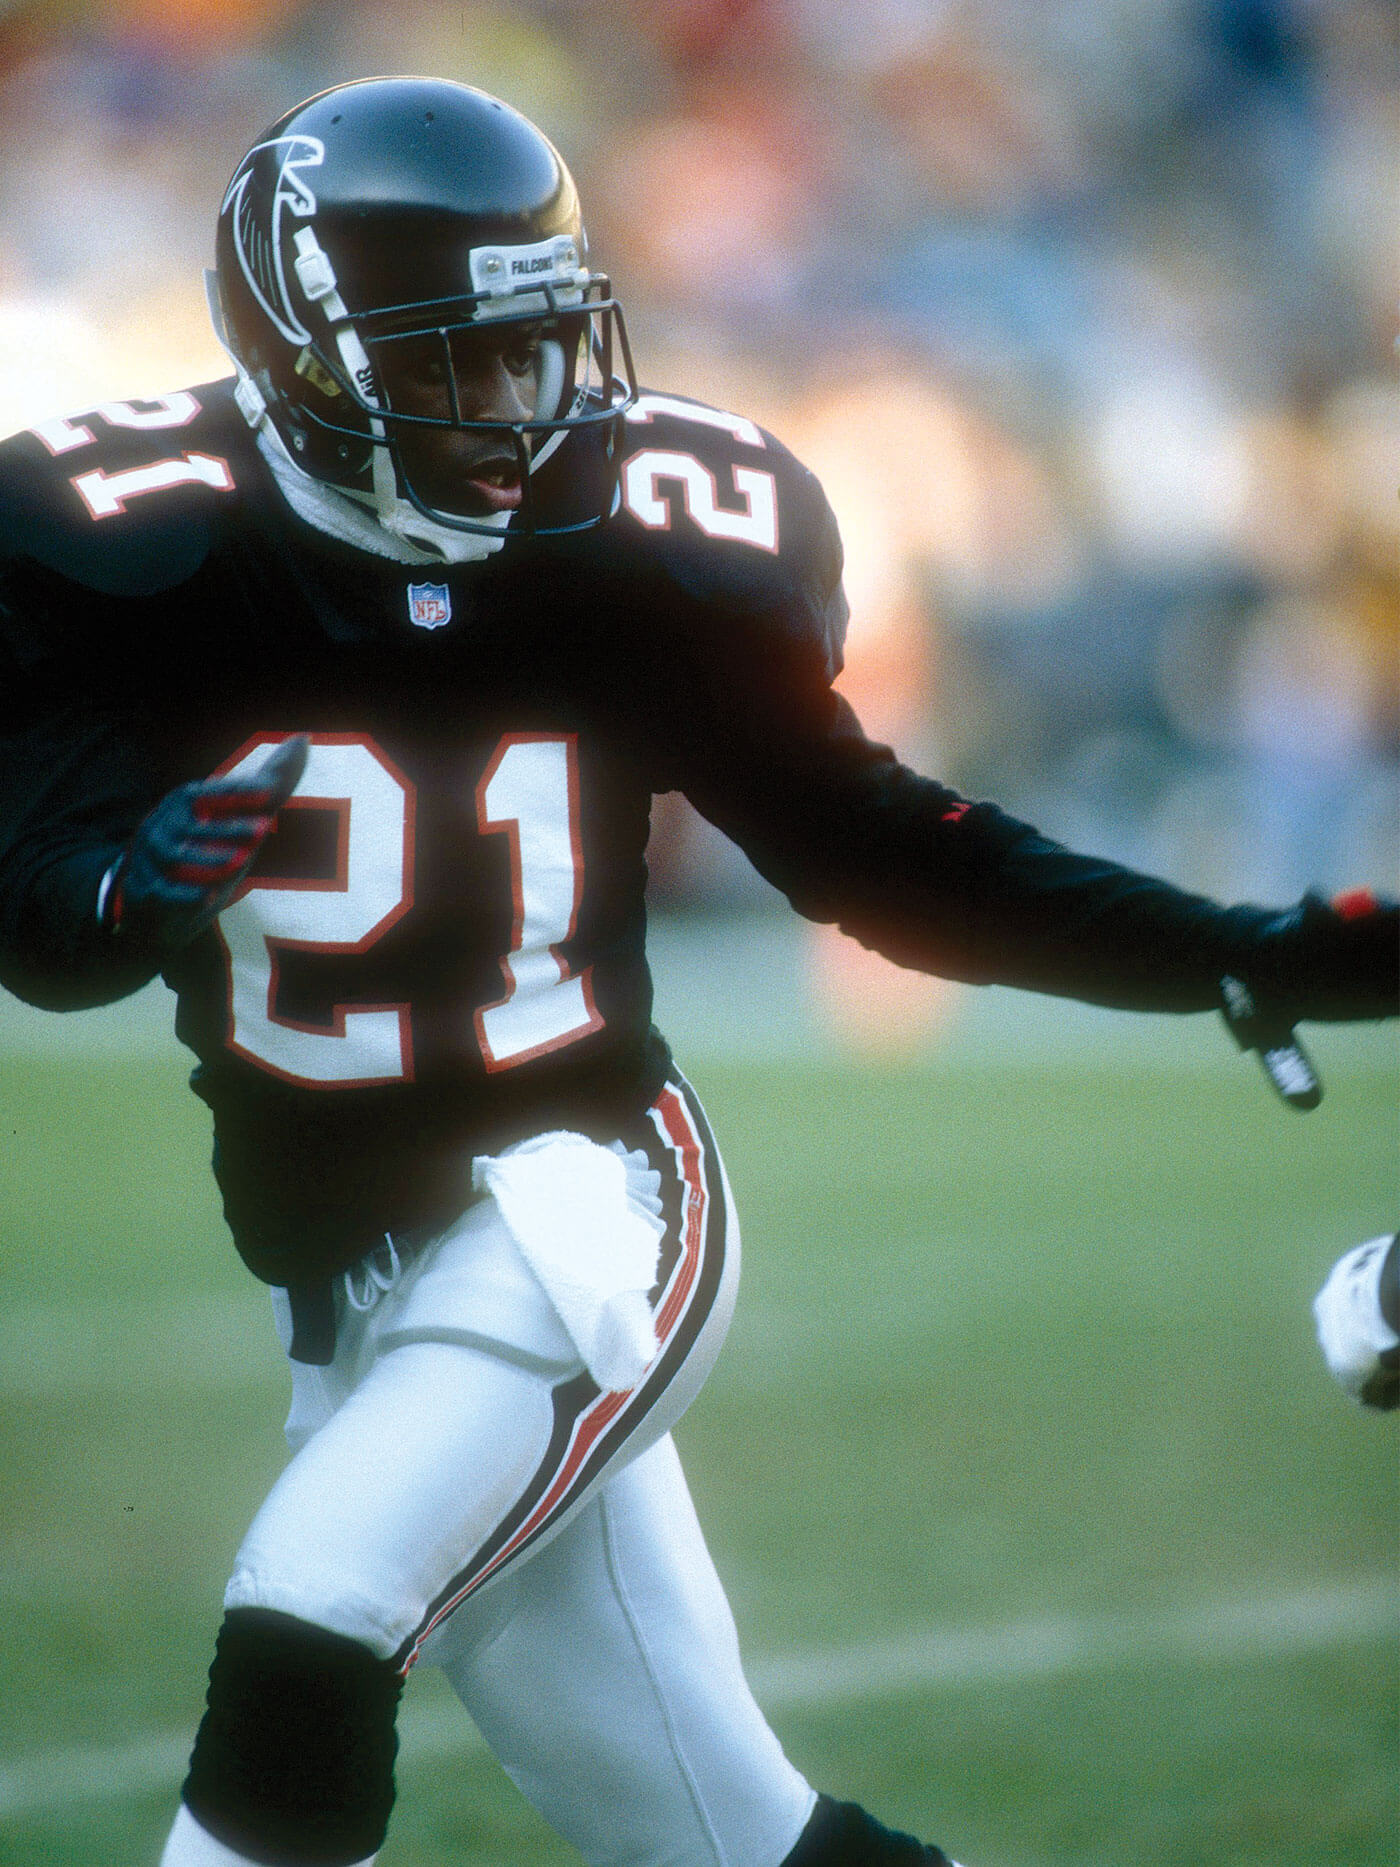 aee7845f It took a man—not a marketing team—to restore the luster of the jersey.  That man was Deion Sanders. He made glorious interceptions while taking  punt returns ...